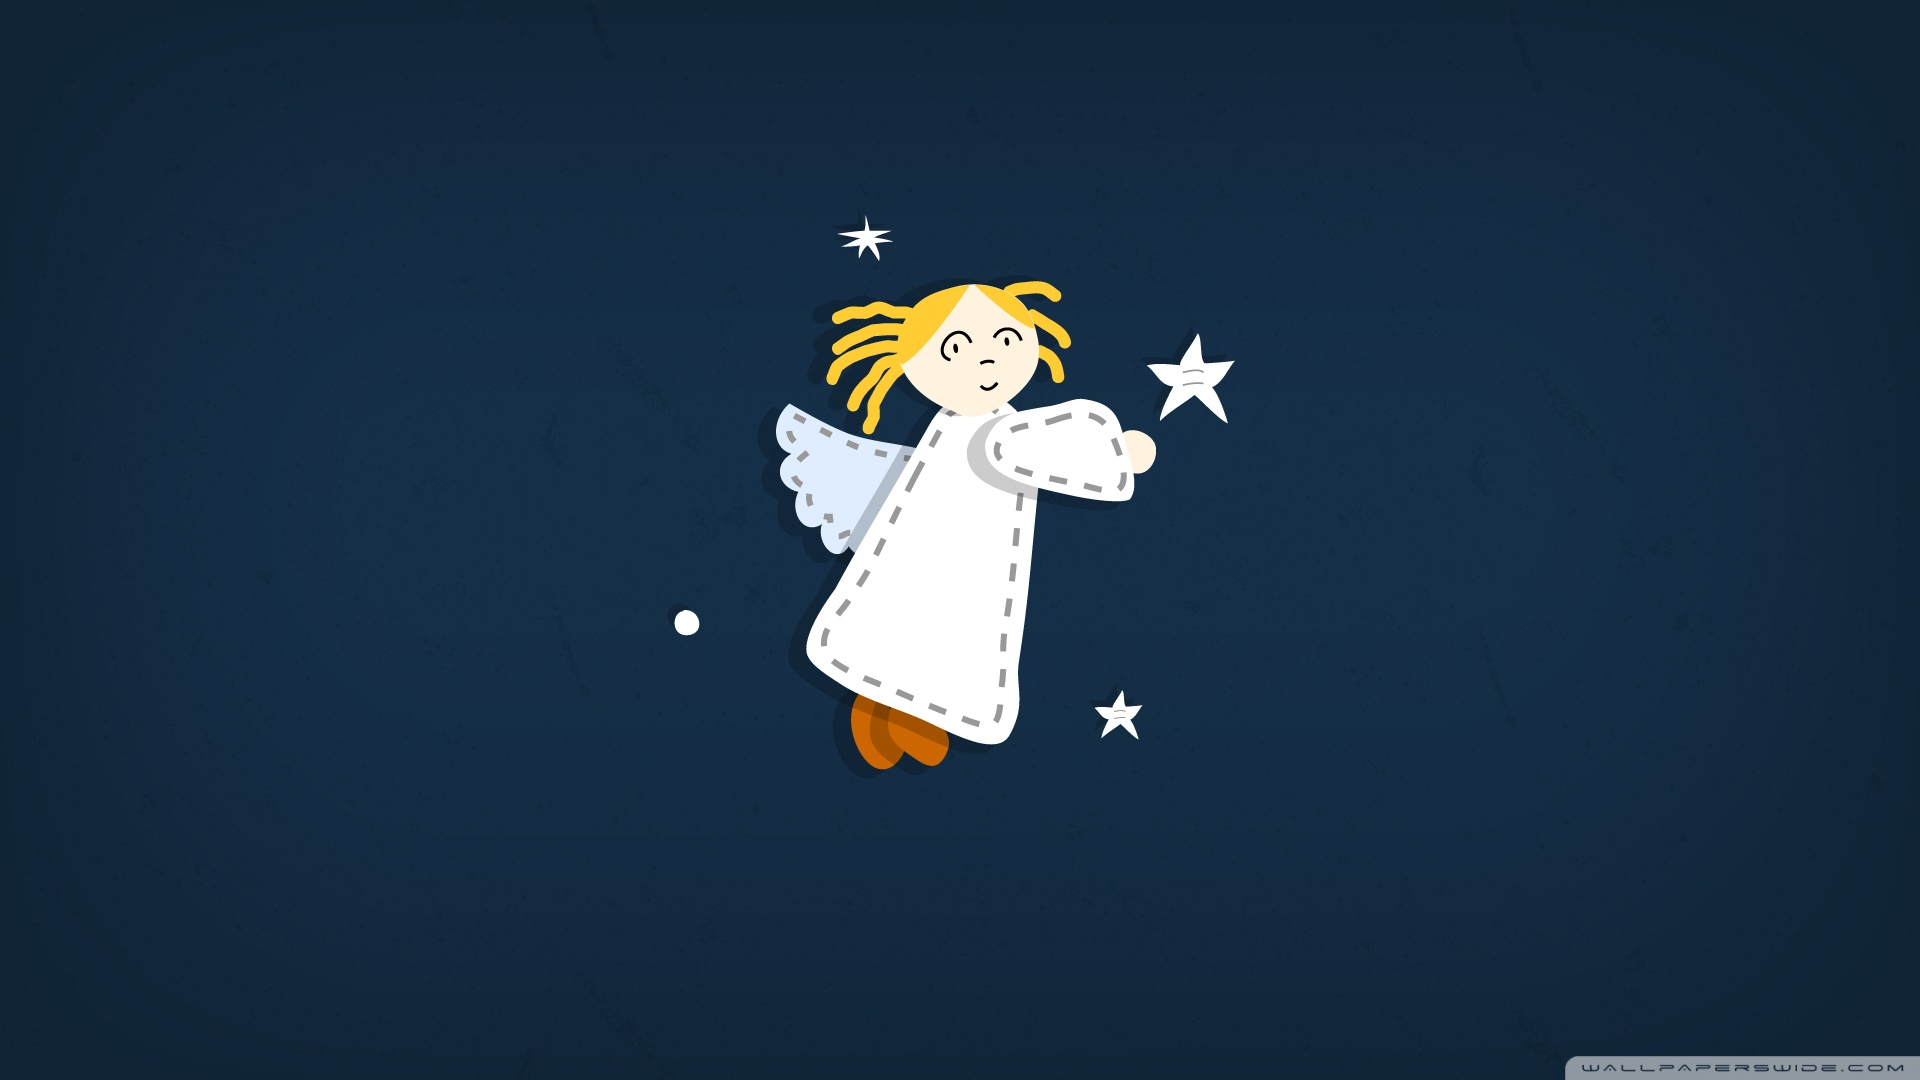 320x480 Animated Wallpapers Cartoon Angel 4k Hd Desktop Wallpaper For 4k Ultra Hd Tv